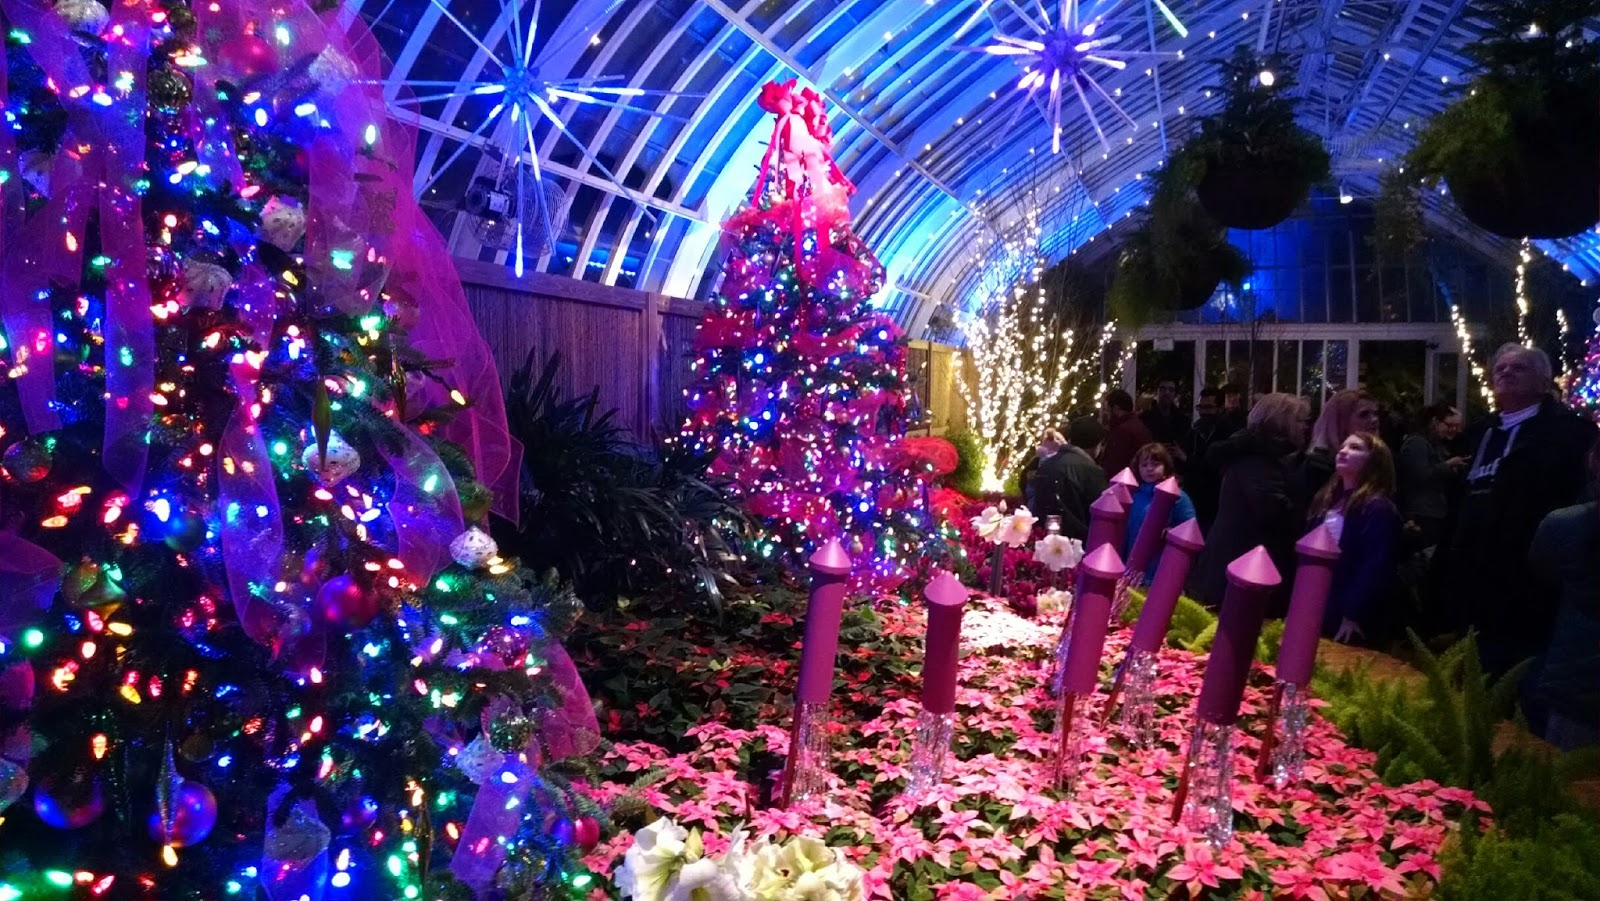 day 251 phipps conservatory wonder of the season new show new timed entry